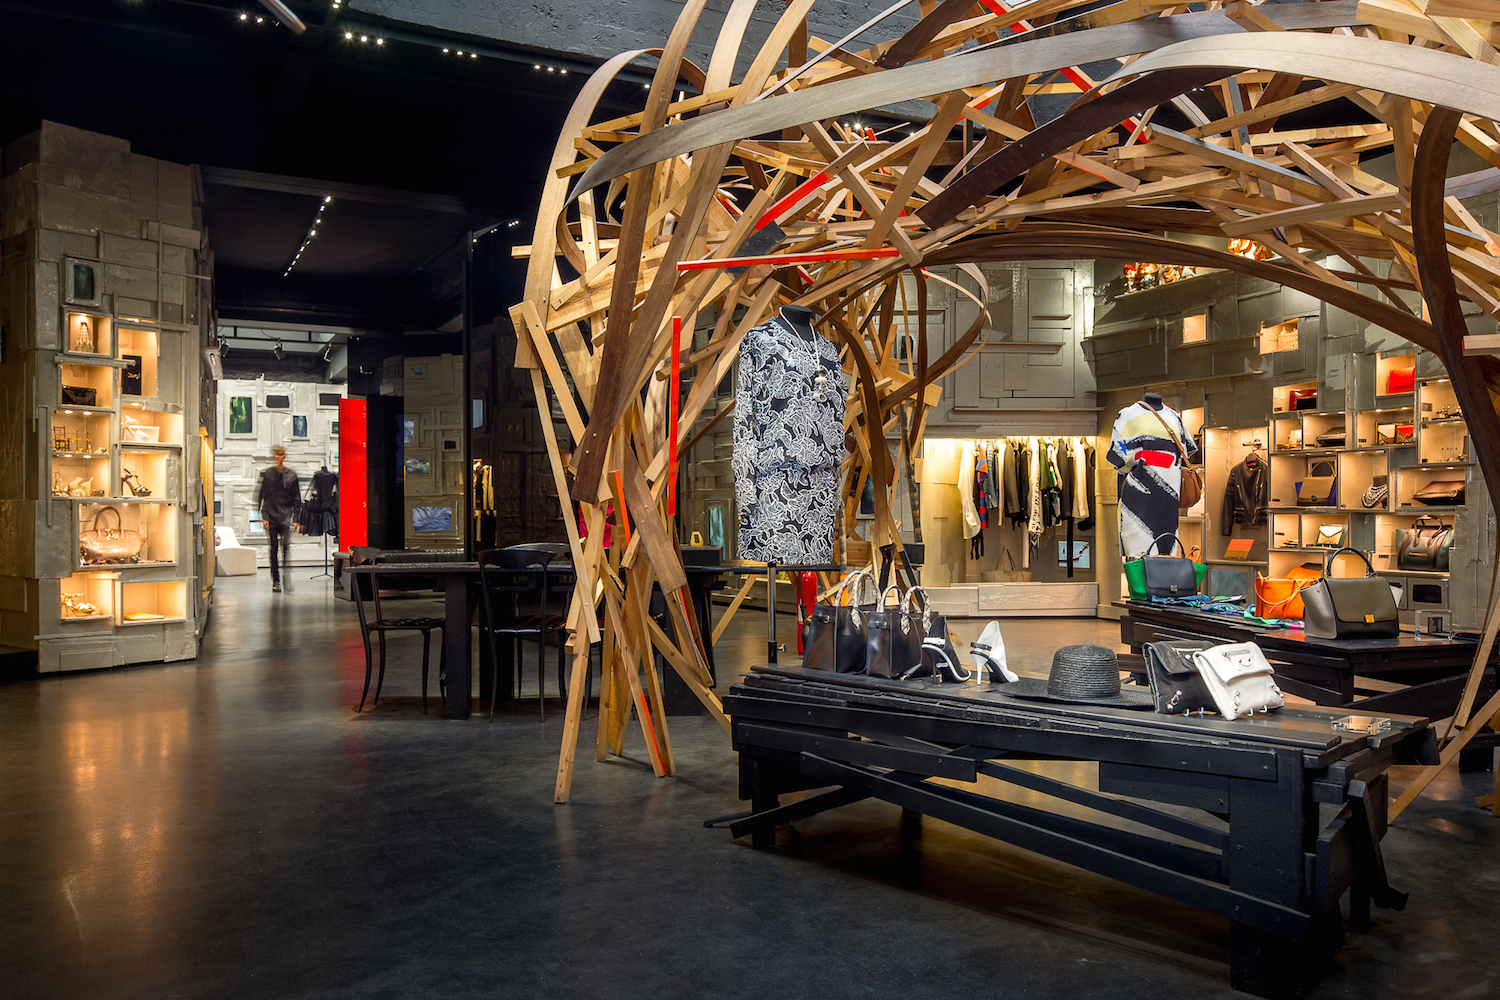 Convergence of metal and wood. Image Credit: Business of Fashion.com